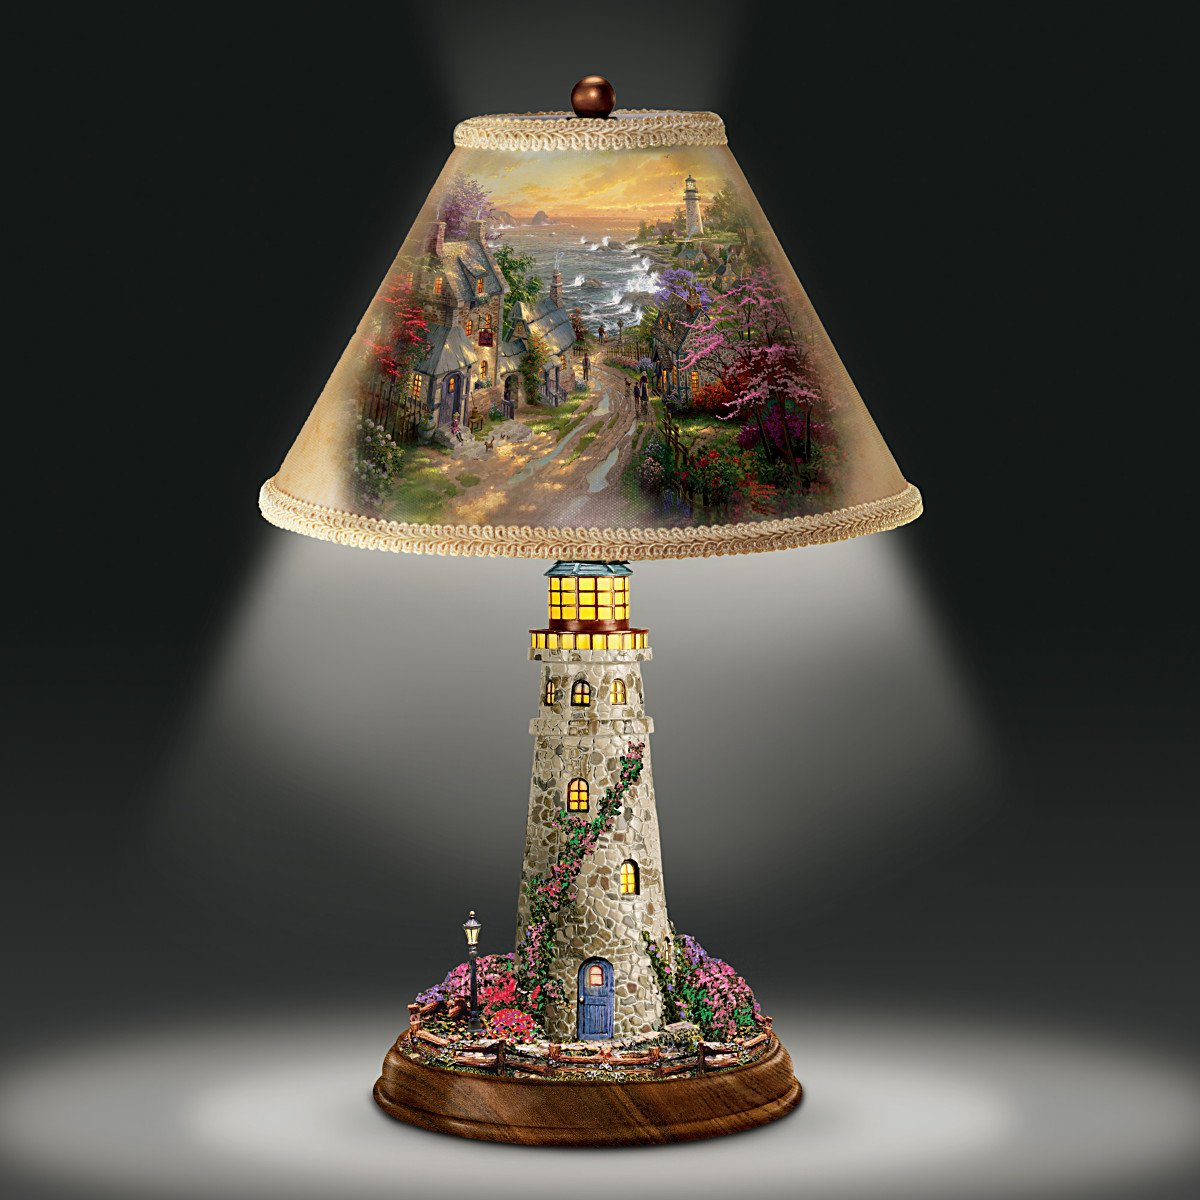 Thomas Kinkade Lamp With The Village Lighthouse Artwork On Shade And Lighthouse Base by The Bradford Exchange by Bradford Exchange (Image #4)